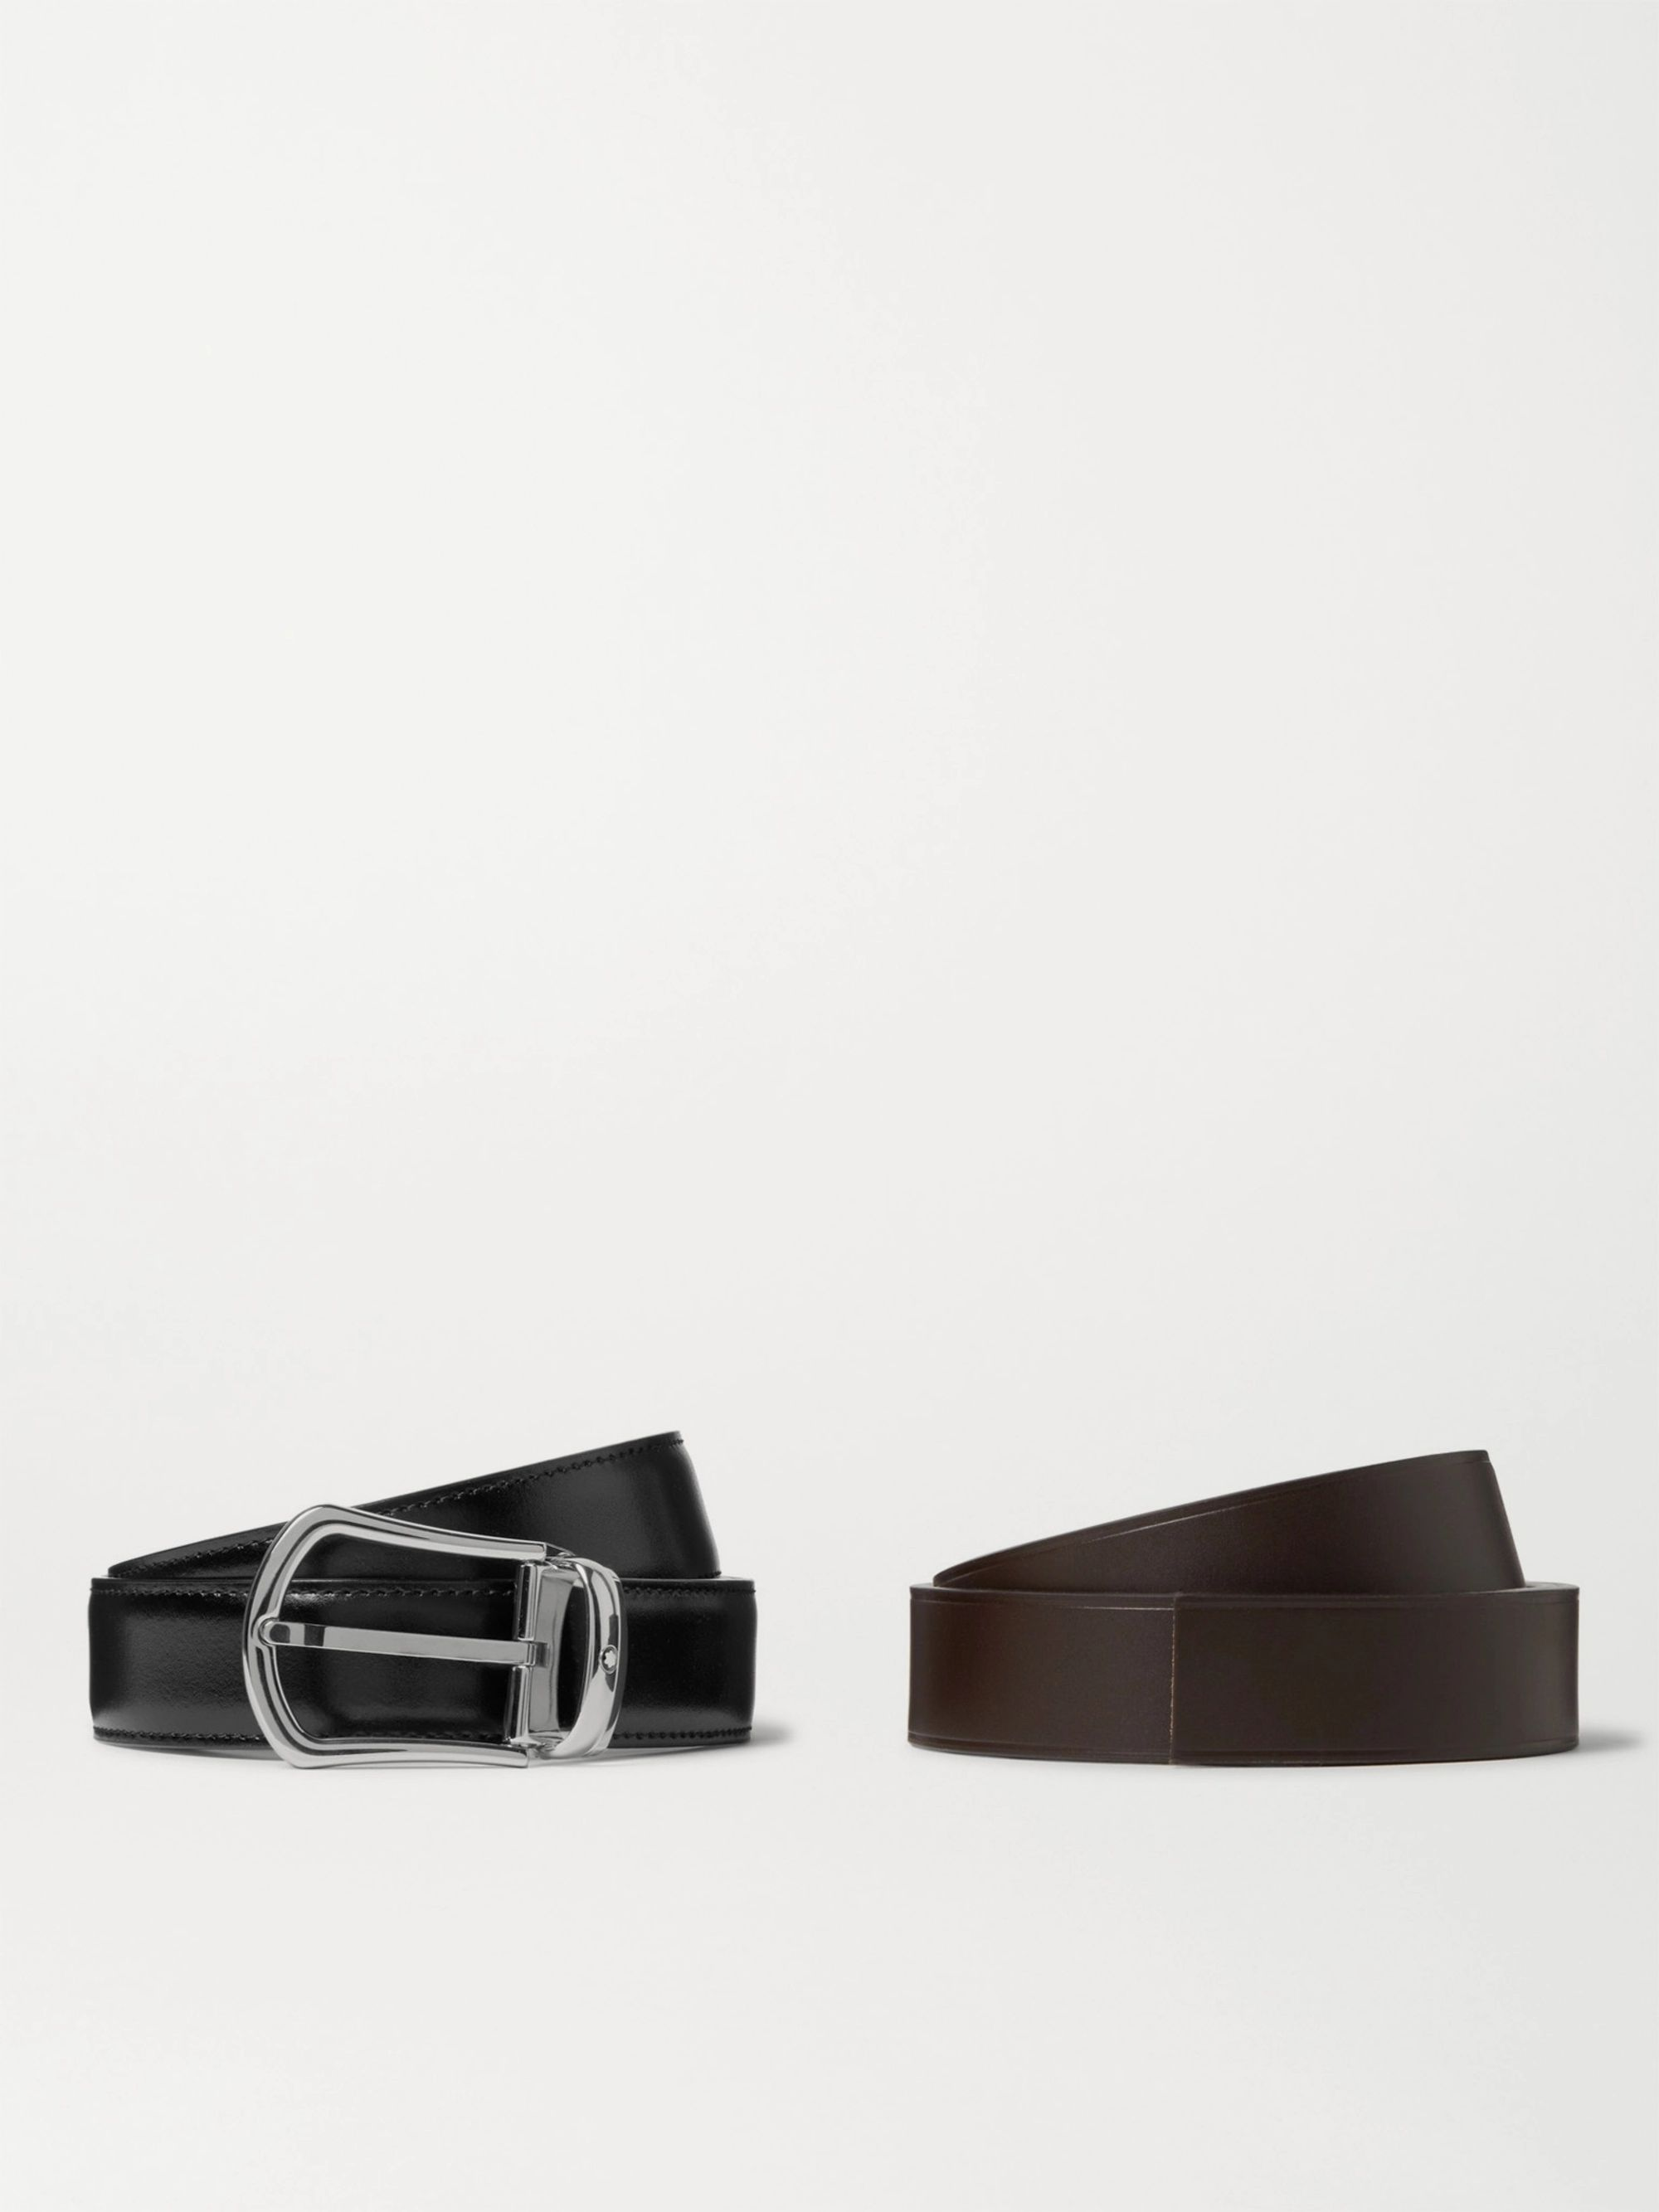 Montblanc Set of Two 3cm Black and Brown Leather Belts